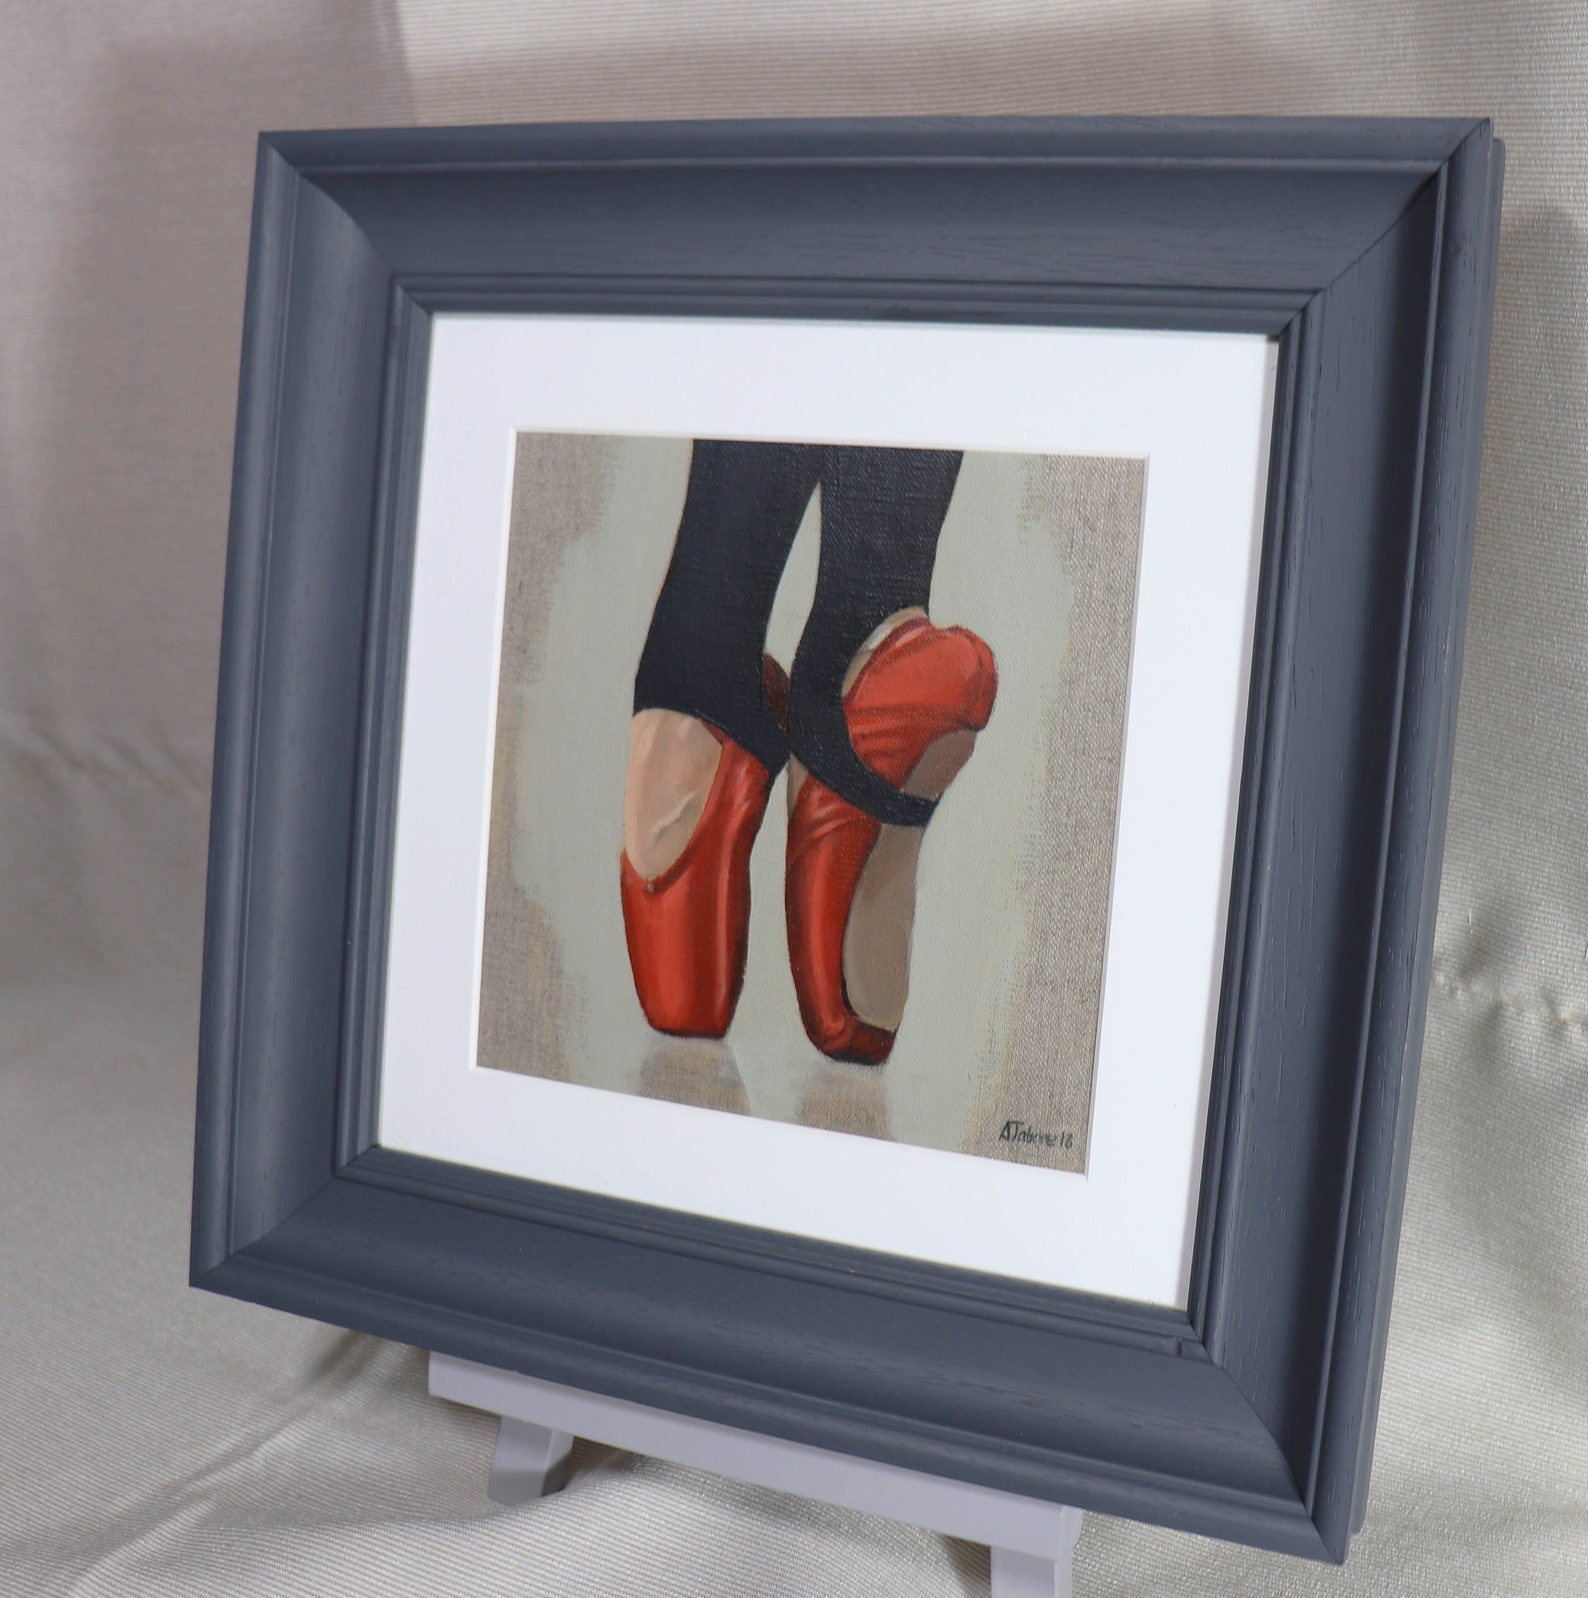 red ballet shoes, ballet painting, ballerina, dance, framed and ready to hang, wall decor, ballet shoes by gb artist alex jabore